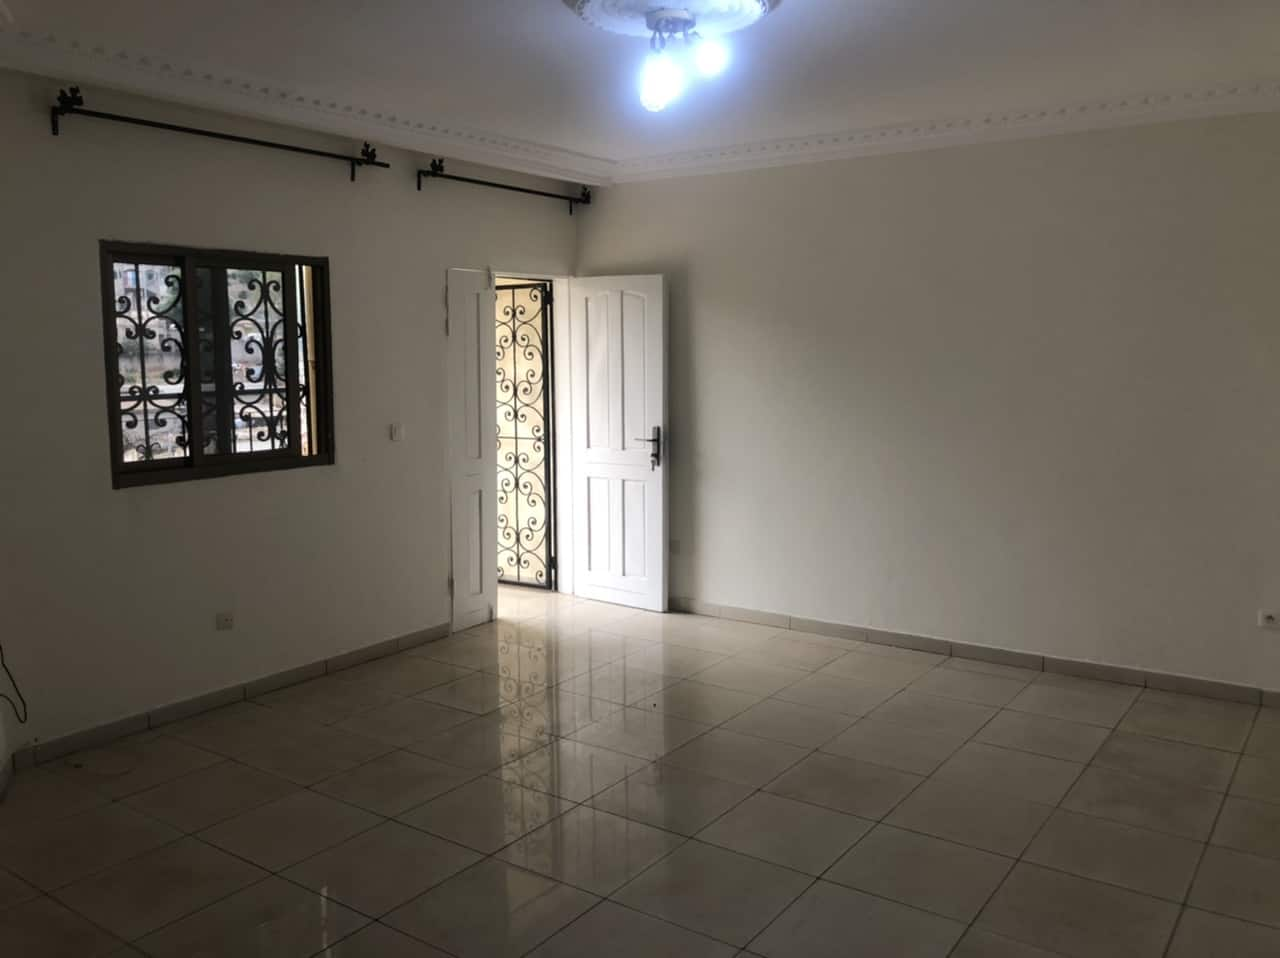 Apartment to rent - Yaoundé, Bastos, Palais de congrès - 1 living room(s), 1 bedroom(s), 1 bathroom(s) - 180 000 FCFA / month